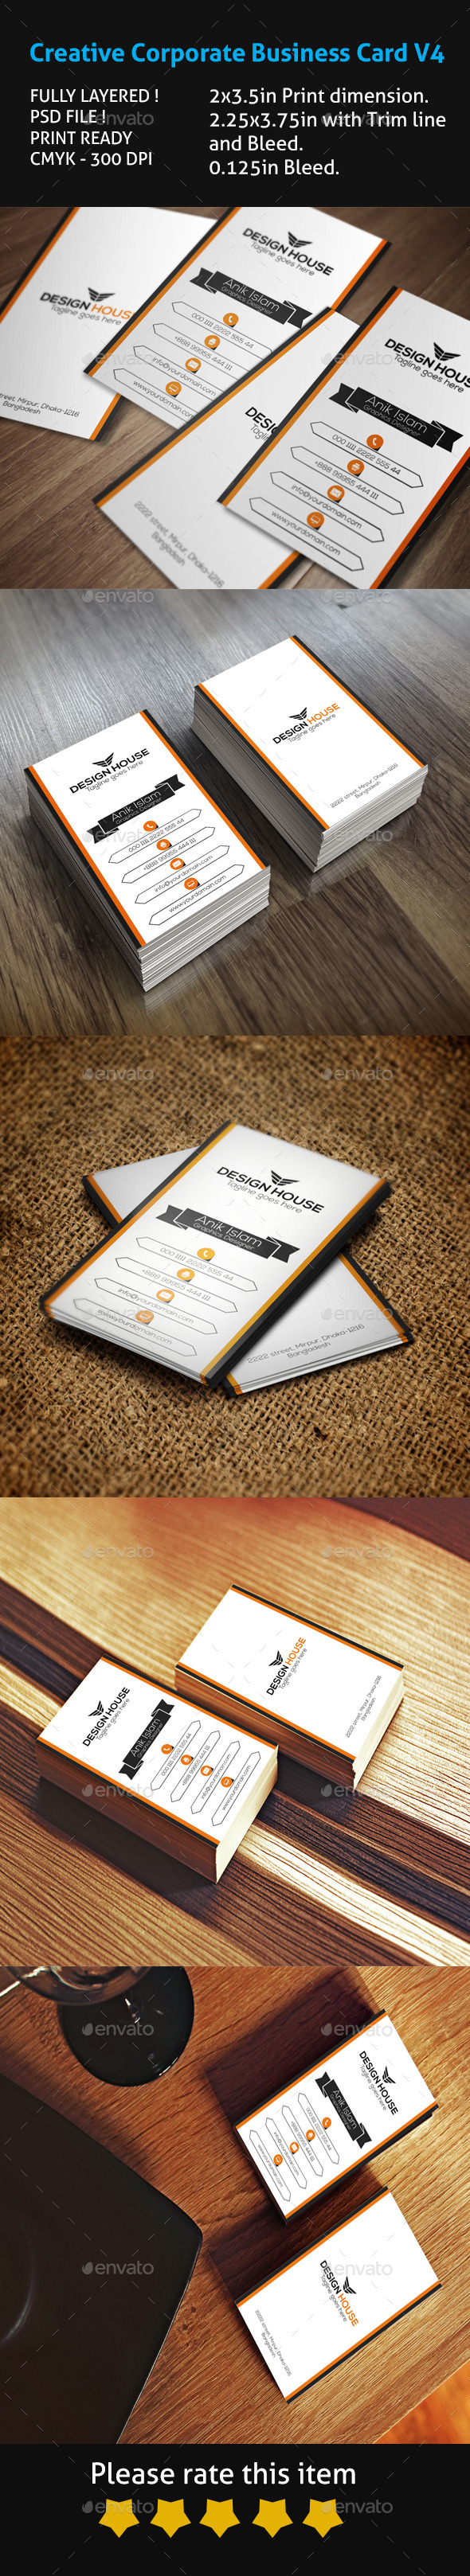 Creative Corporate Business Card V4 - Creative Business Cards